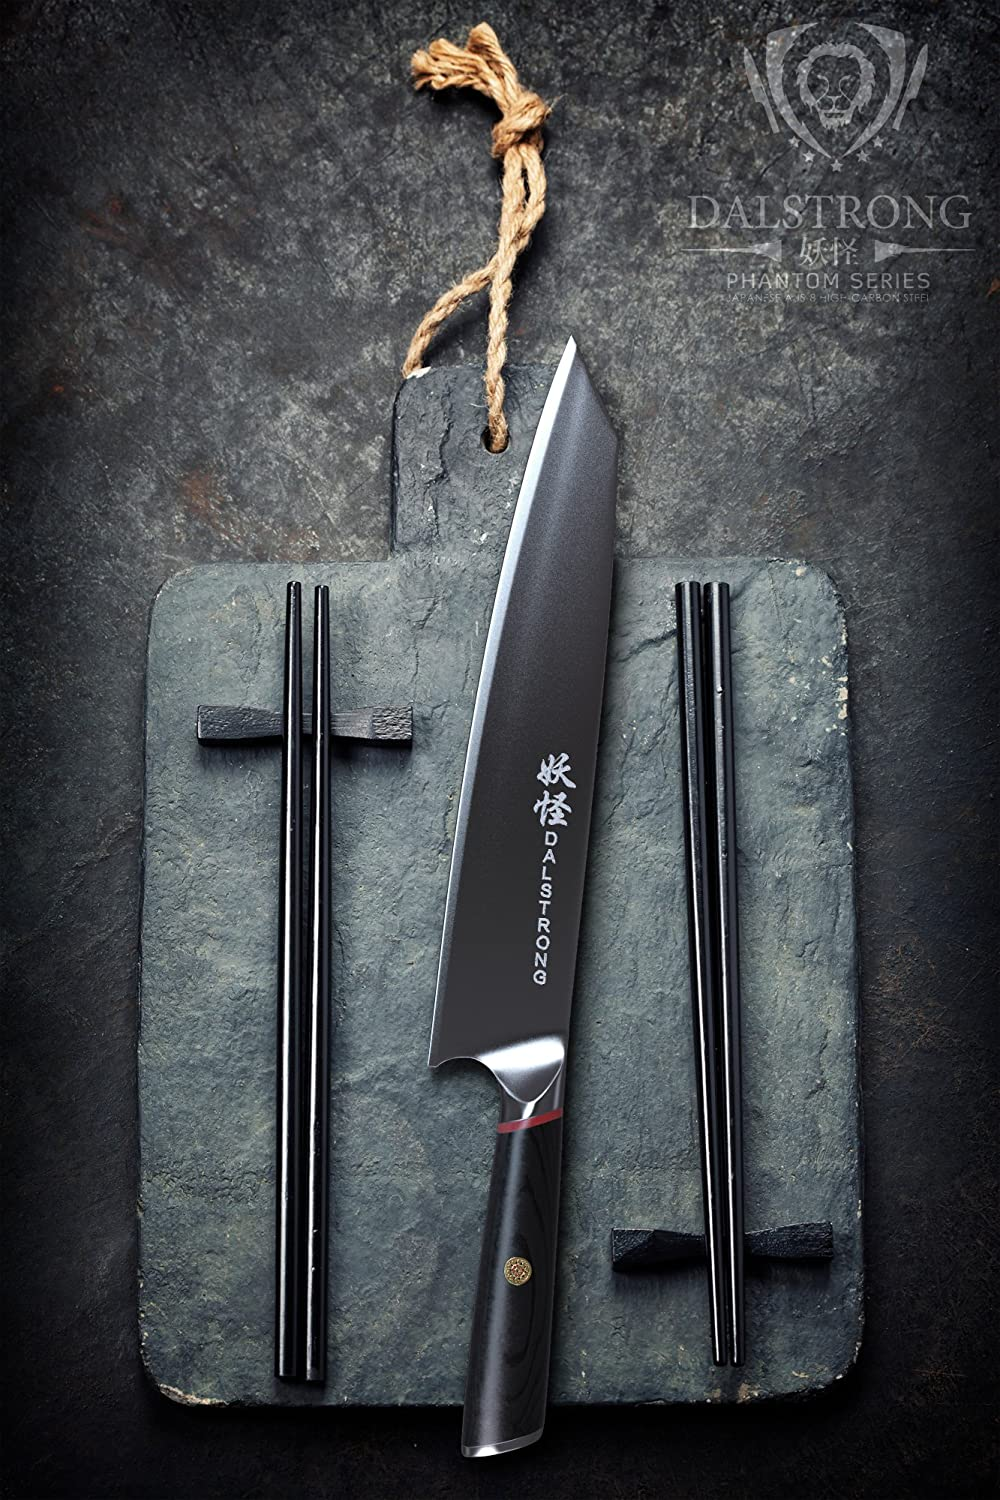 Amazon.com: Dalstrong Phantom series Gyuto cuchillo de chef ...